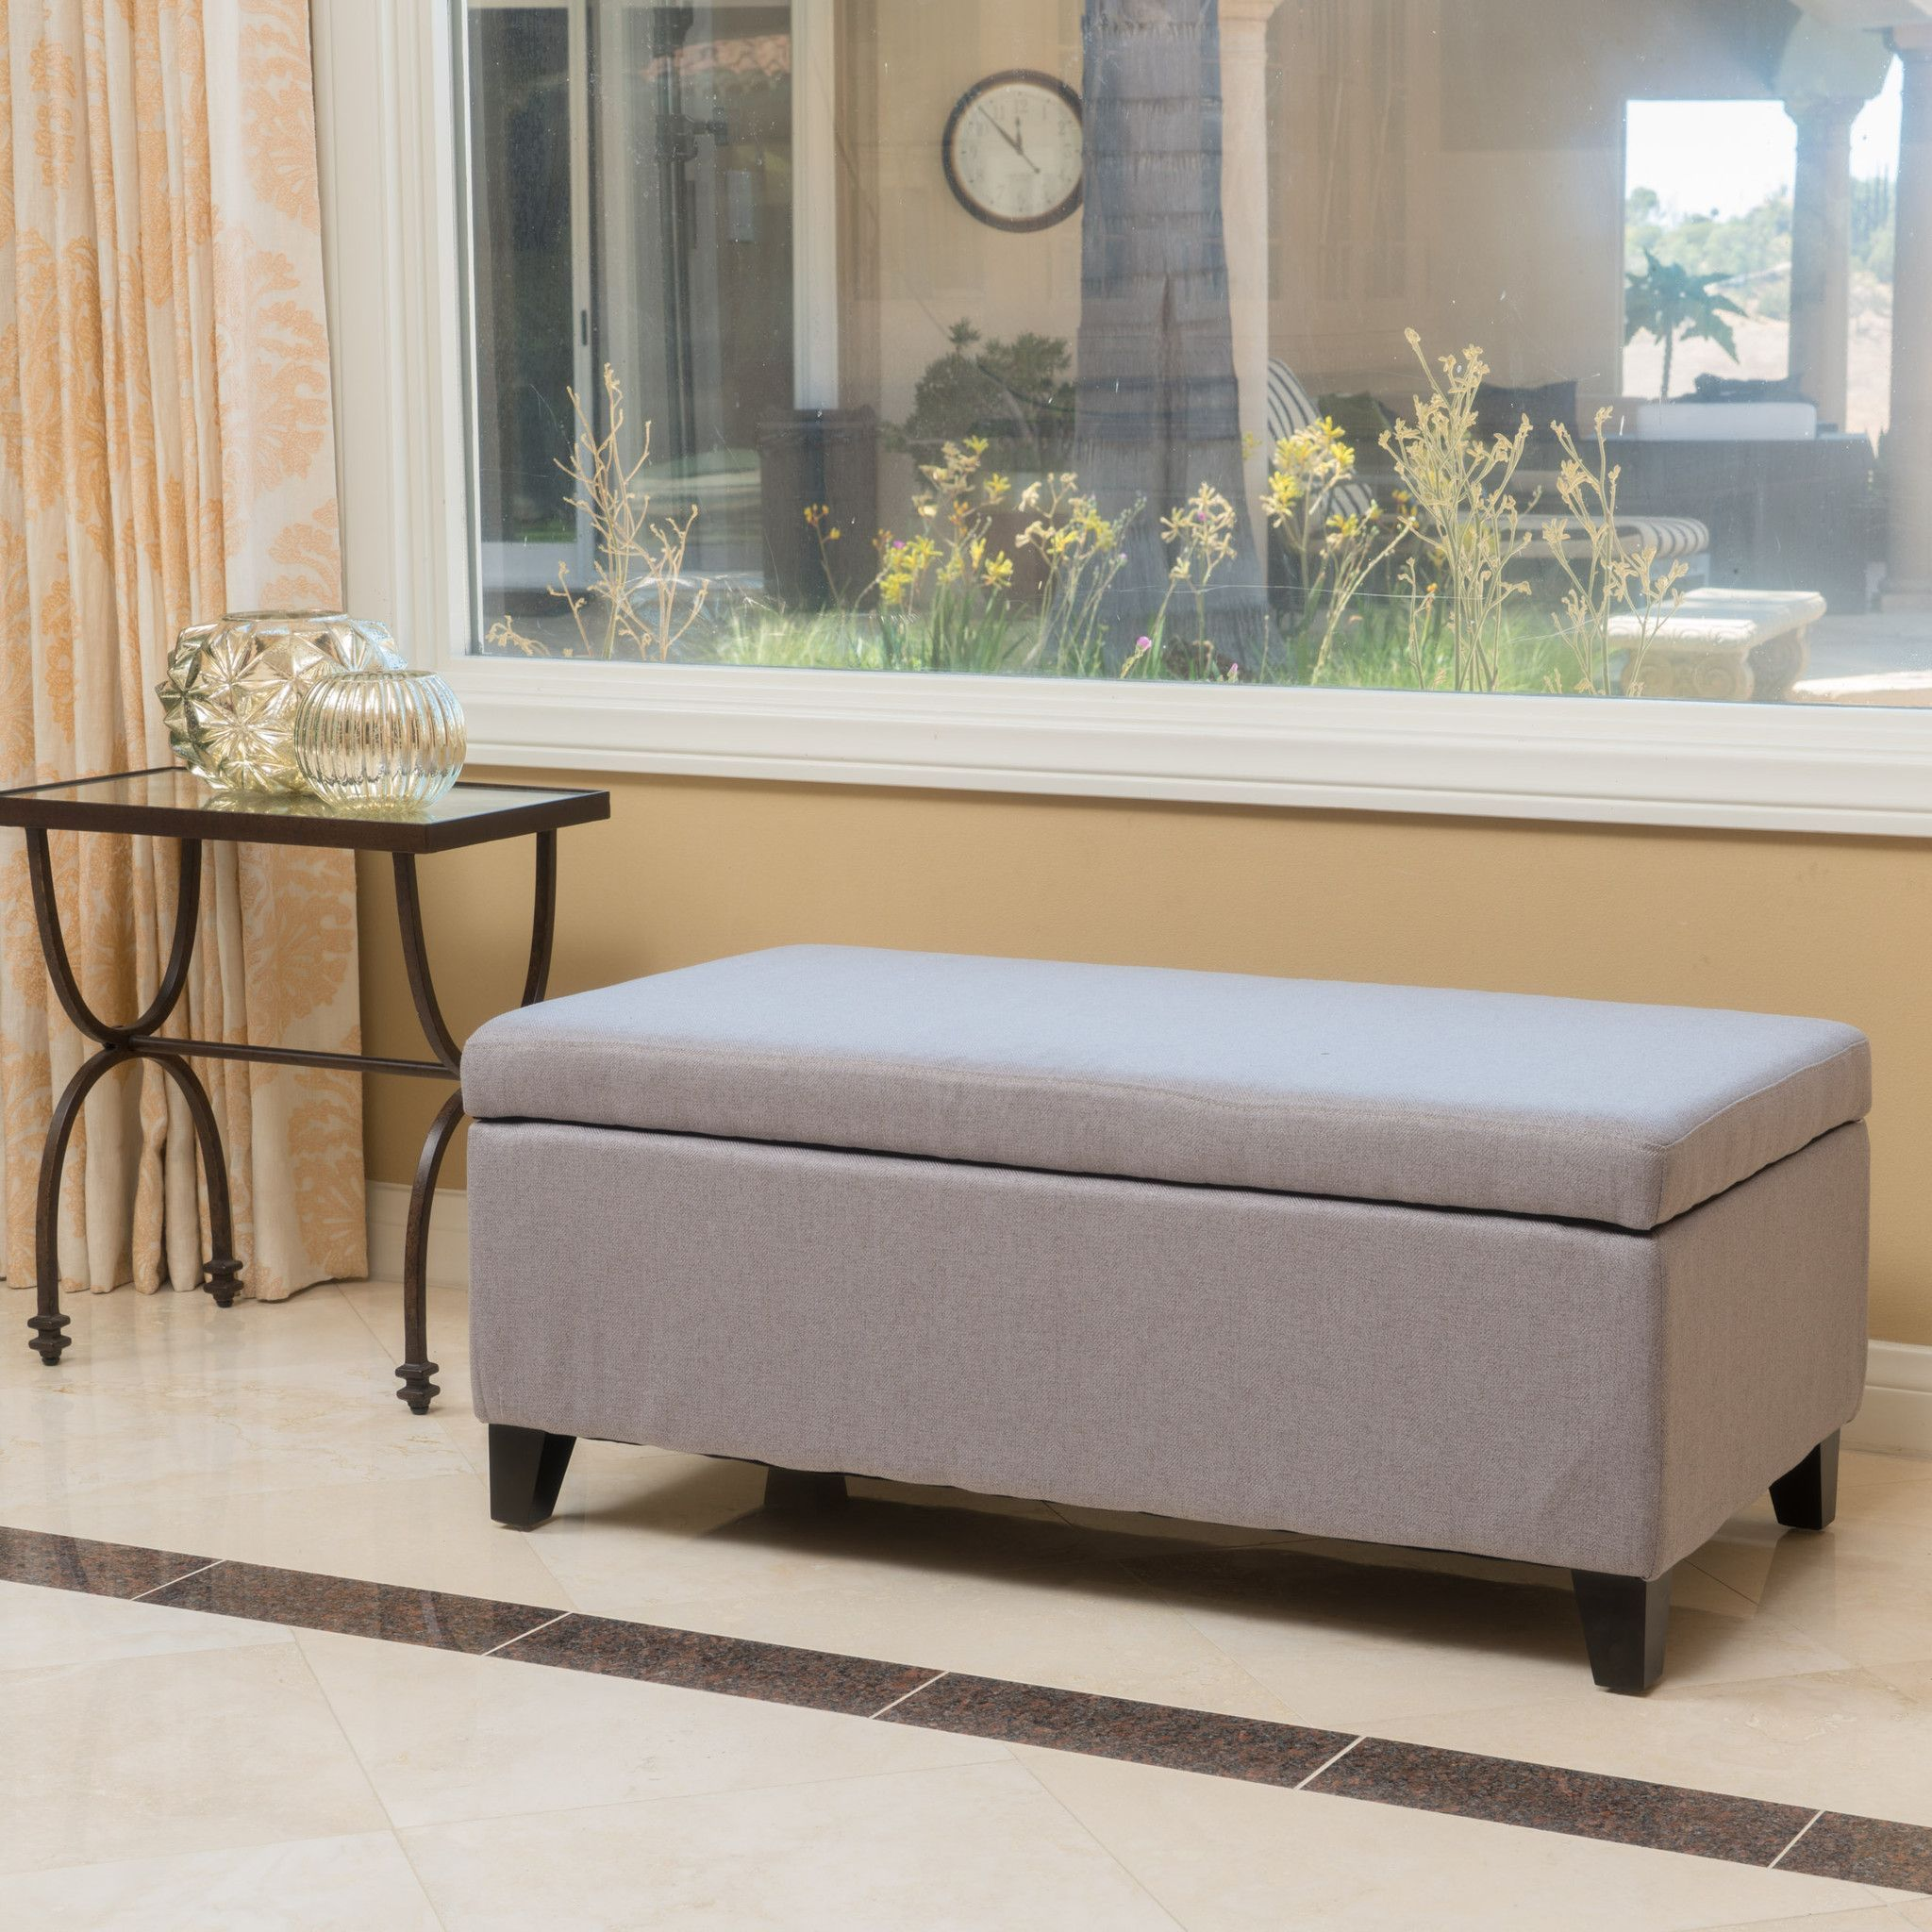 sasten upholstered storage ottoman bench apartment pinterest rh pinterest com